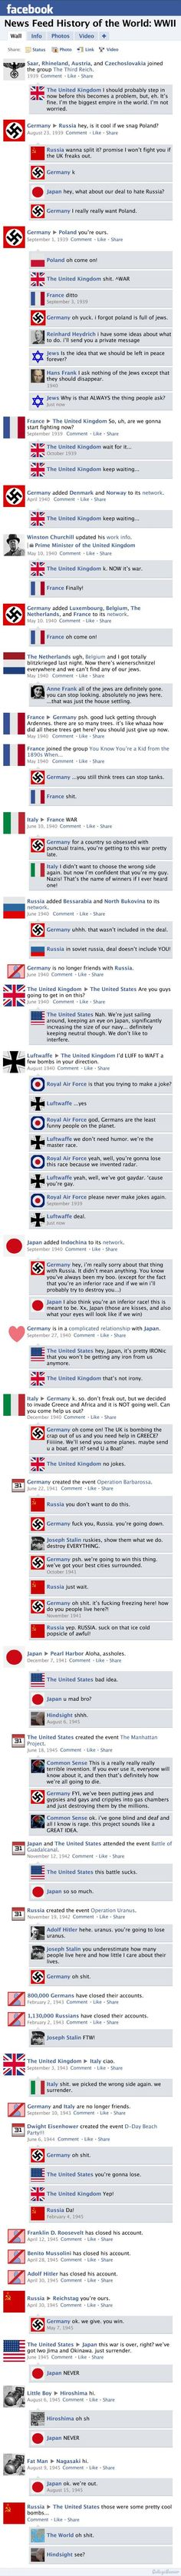 World War II, Facebook news feed